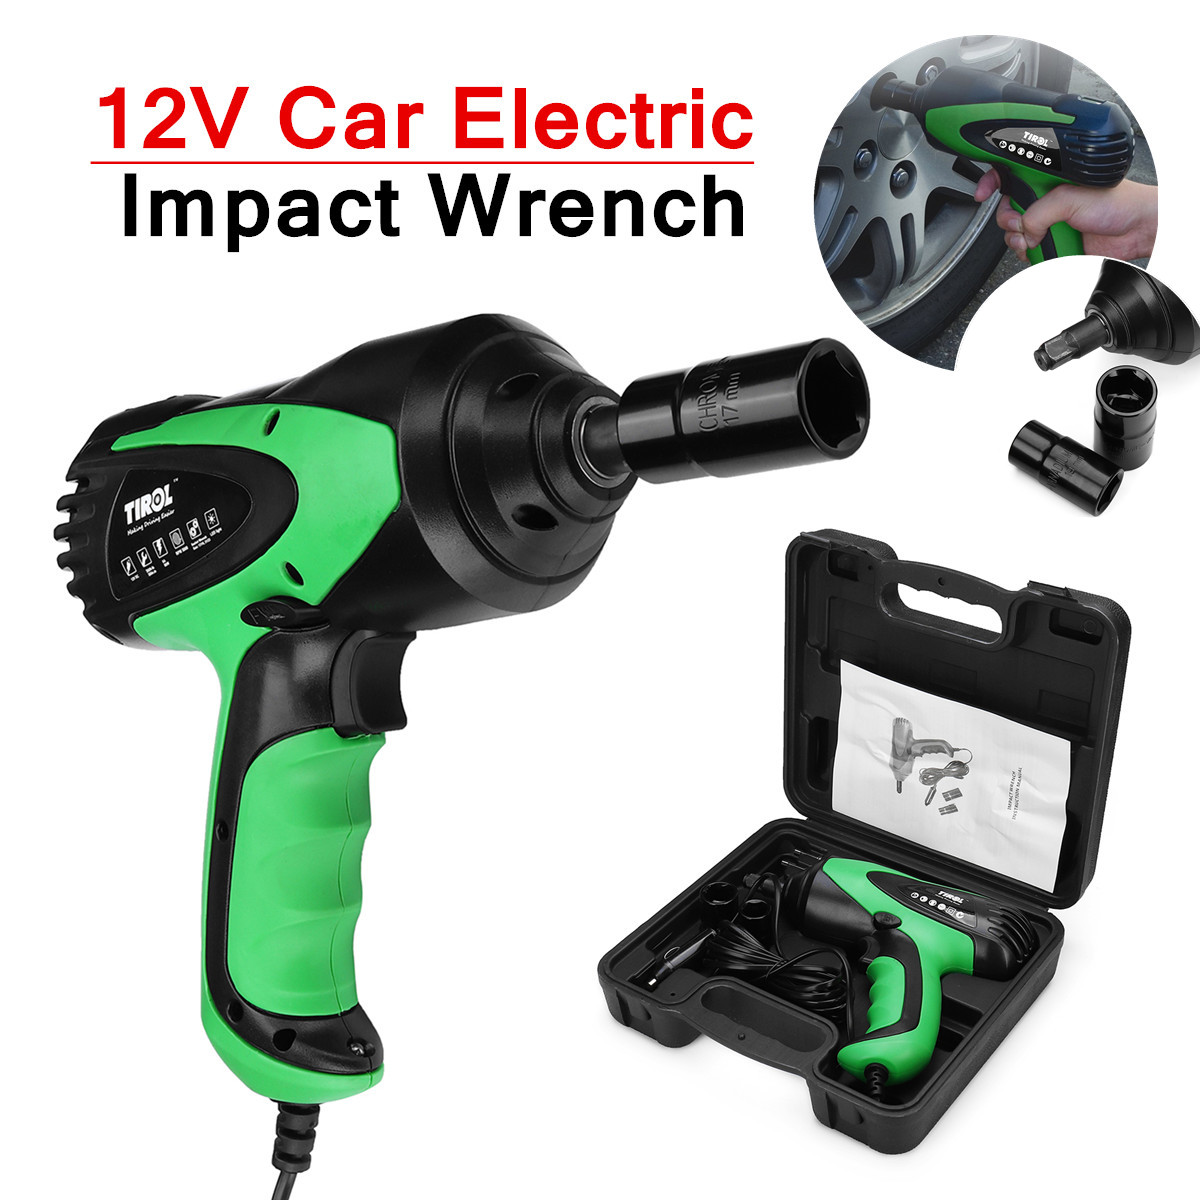 12v Portable Electric Impact Wrenche Emergency Roadside Car Kit Tools Case